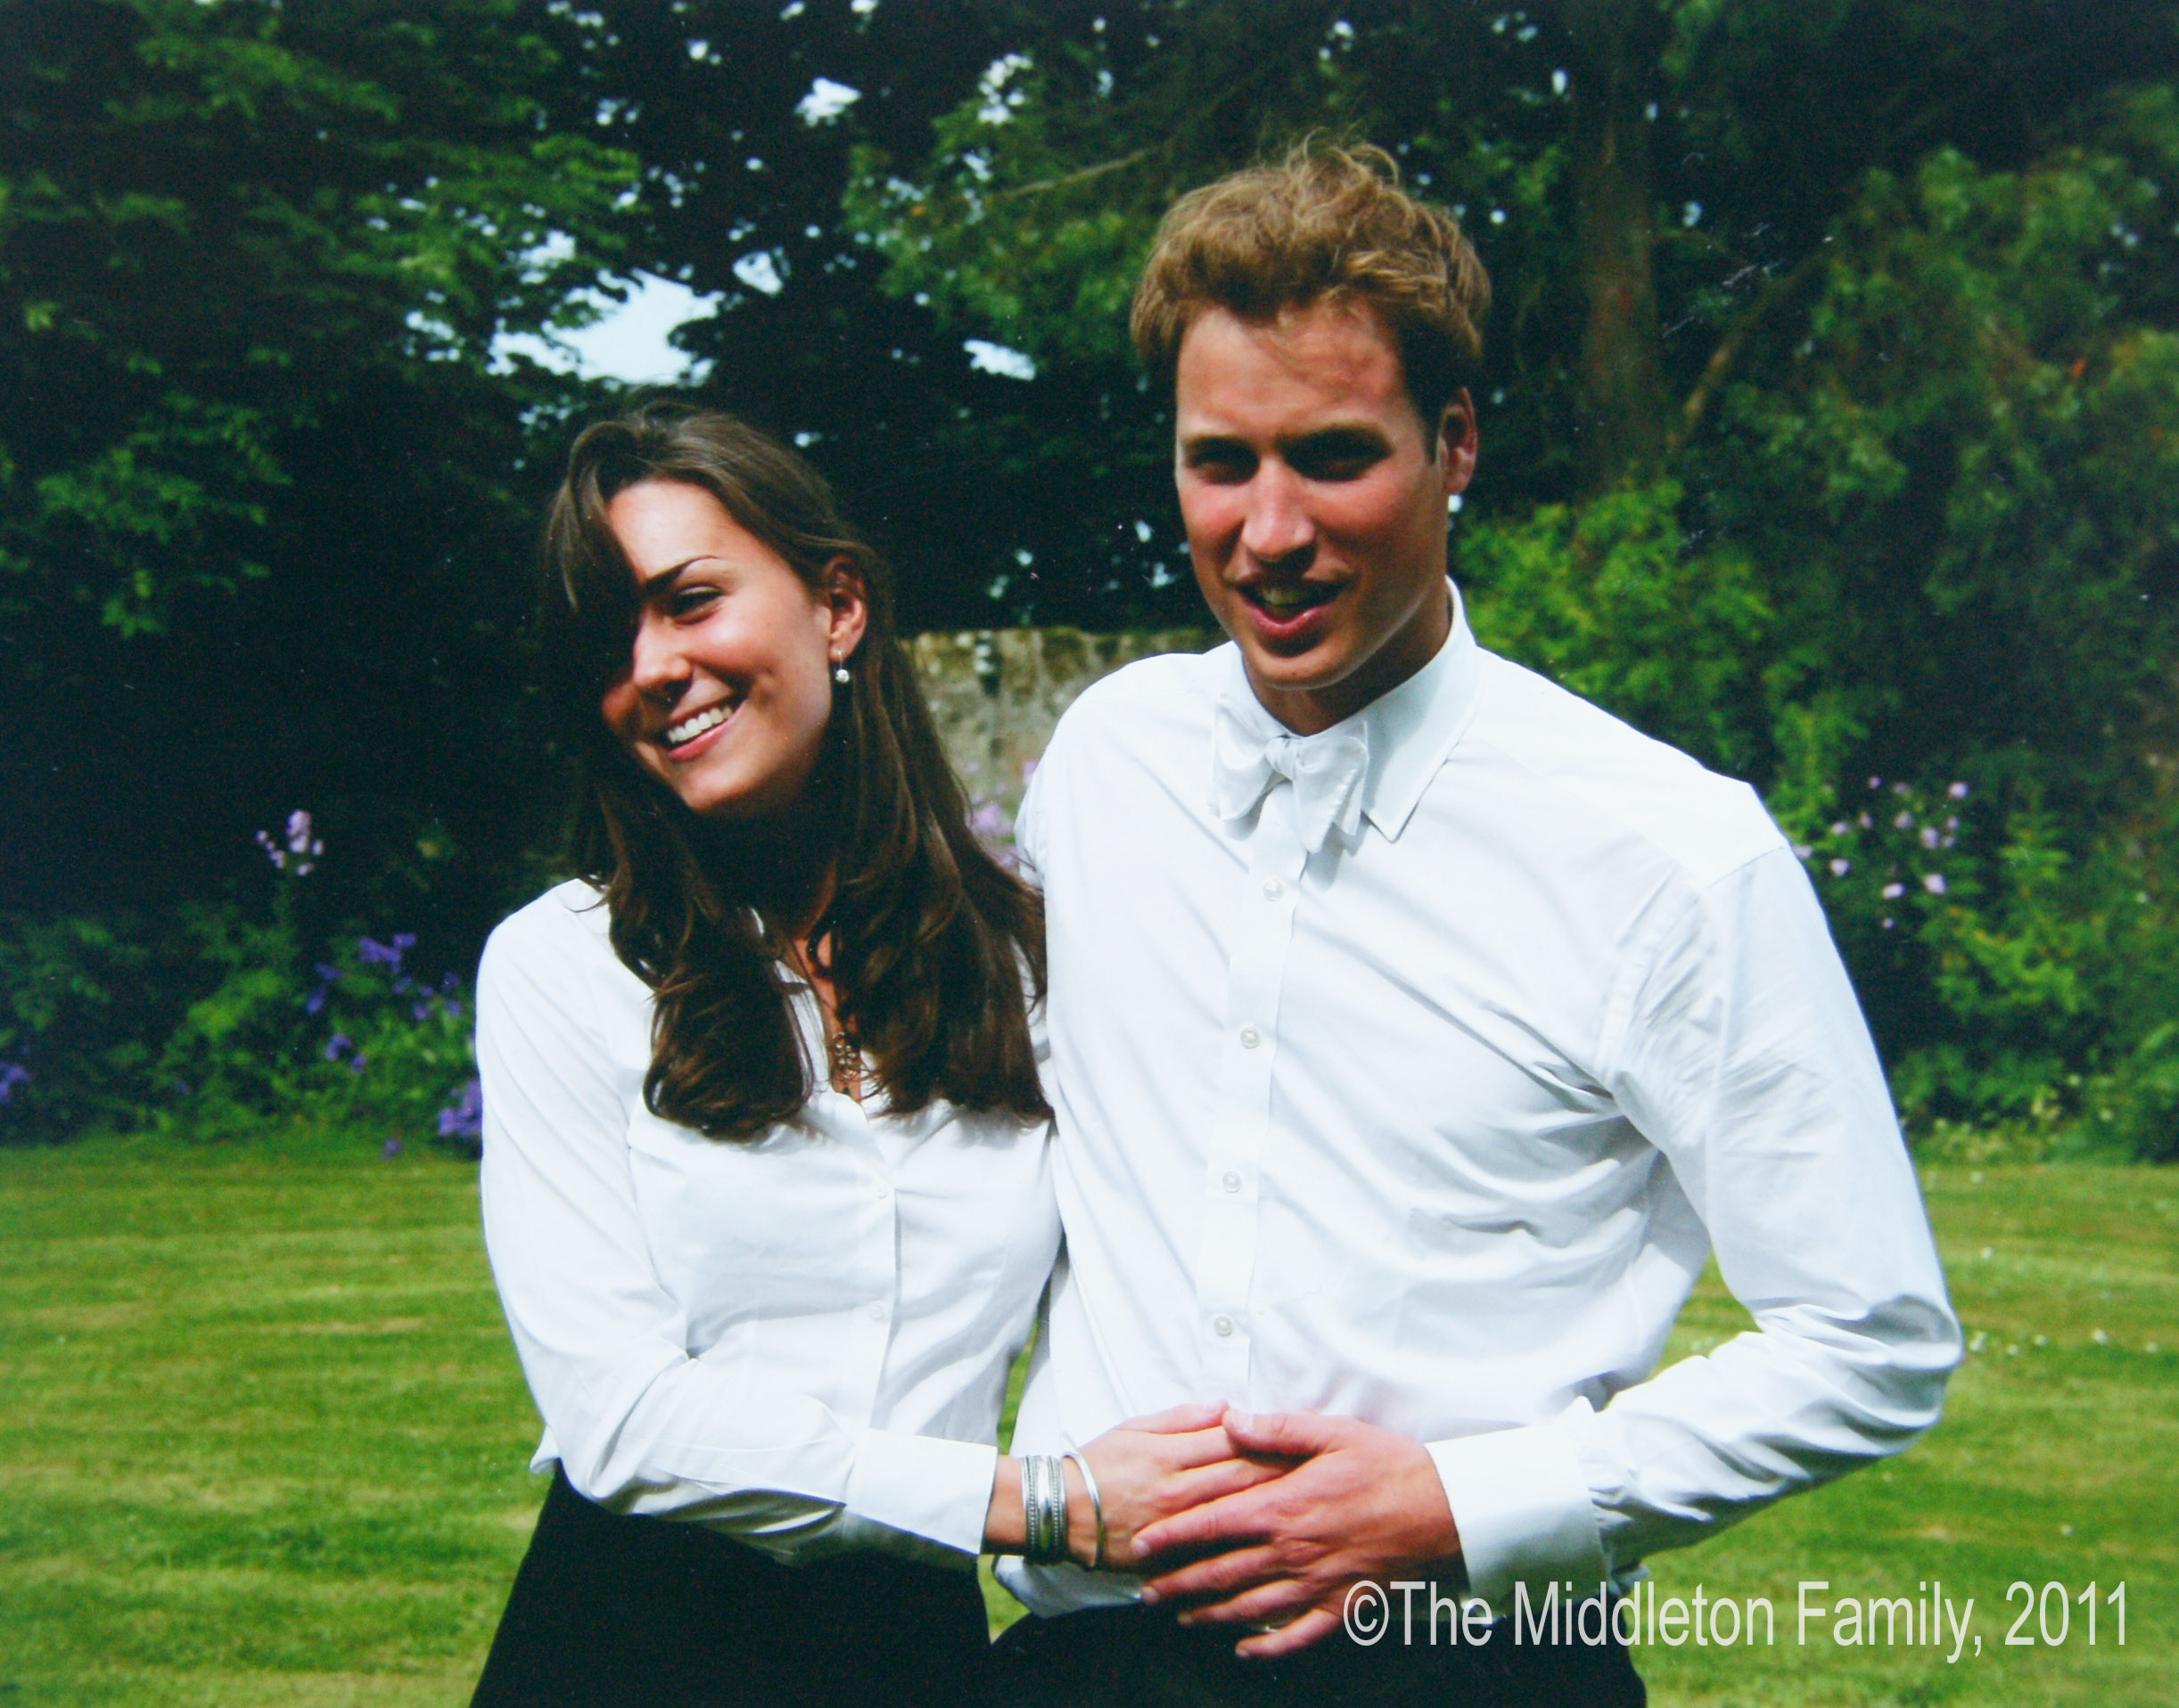 kate-middleton-and-prince-william-at-university